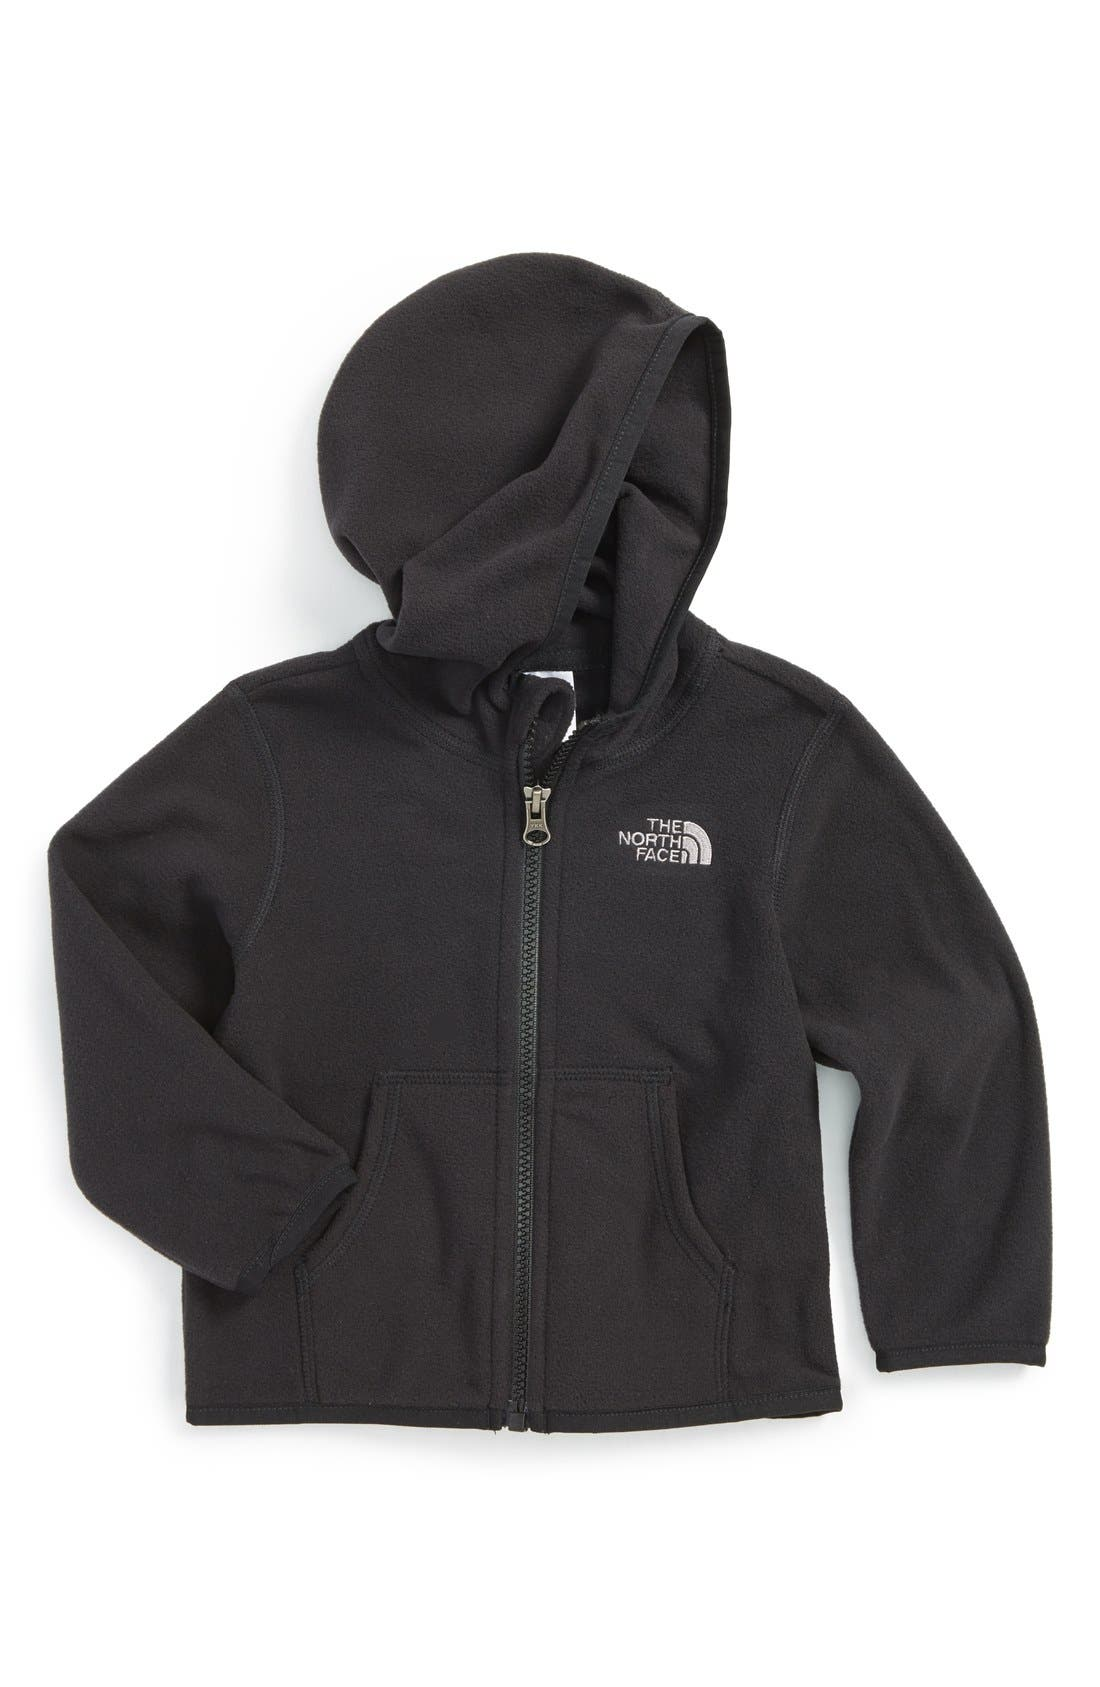 The North Face 'Glacier' Fleece Jacket (Baby)